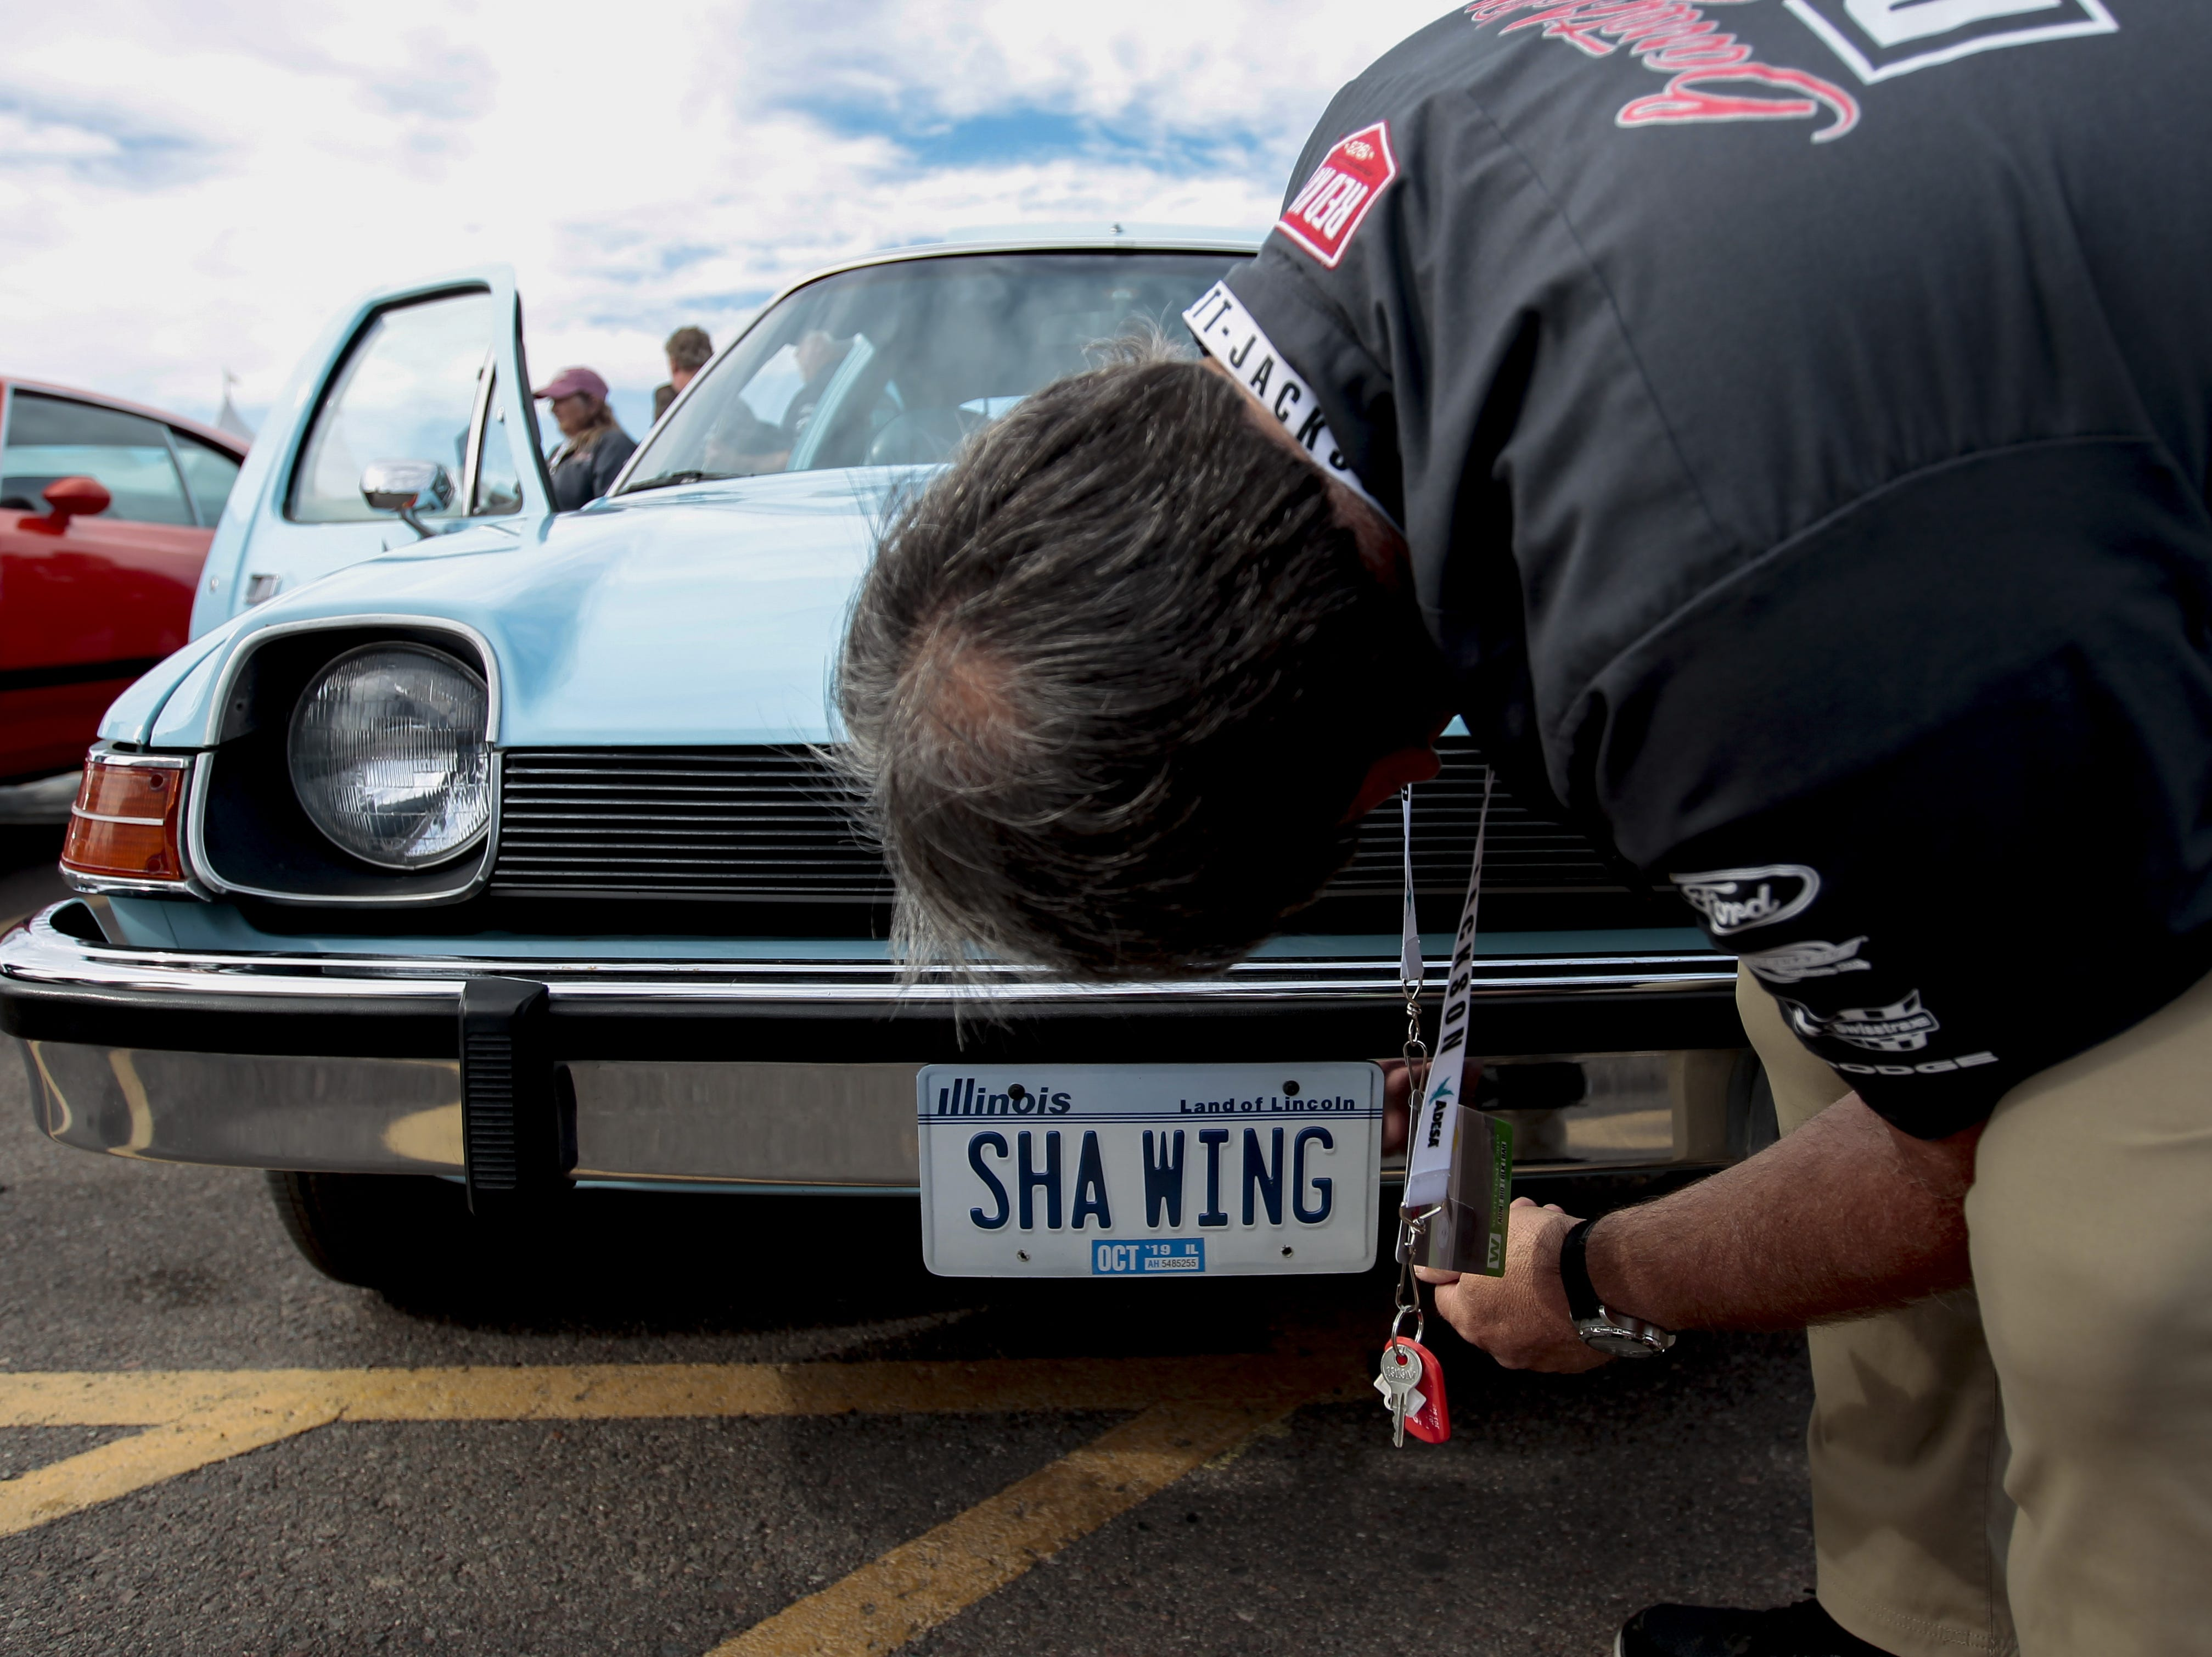 A Barrett-Jackson driver looks at the license plate of a recreation of the Mirthmobile from Wayne's World at the car auction on Jan. 12.